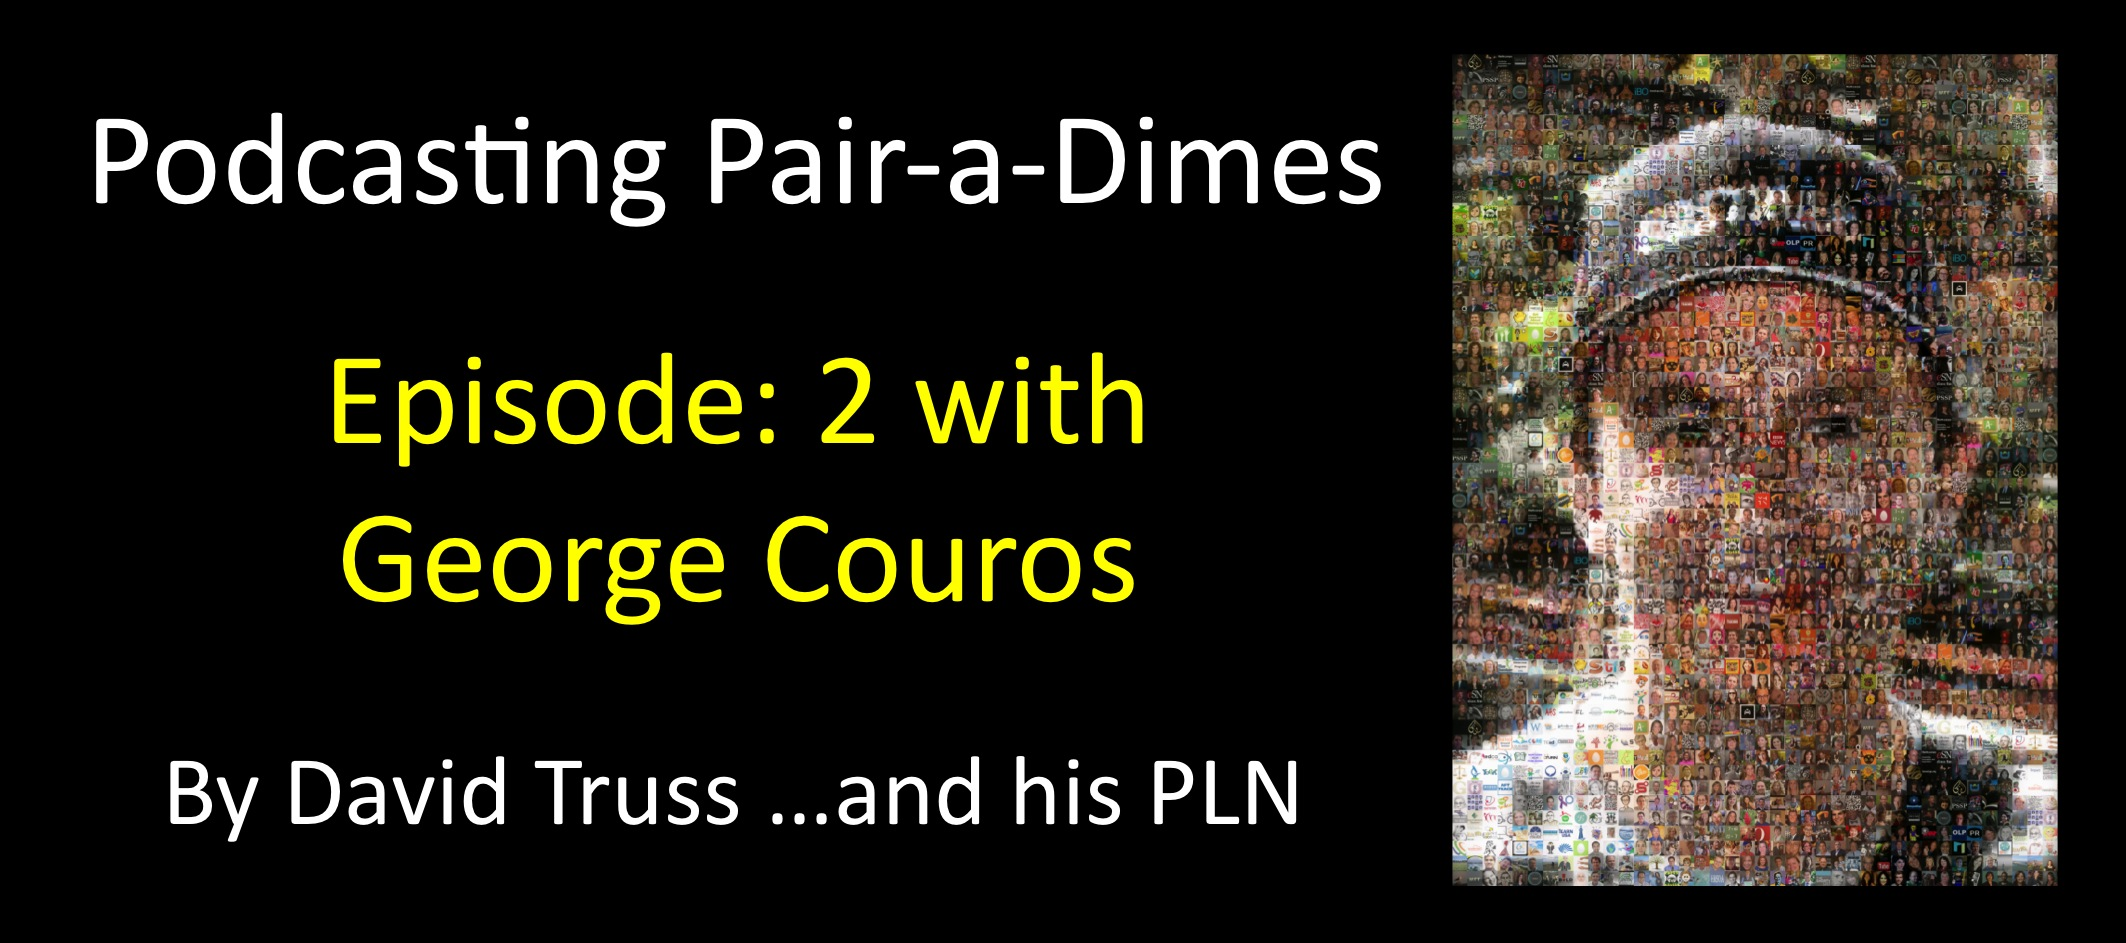 Podcasting Pair-a-Dimes 2 with George Couros